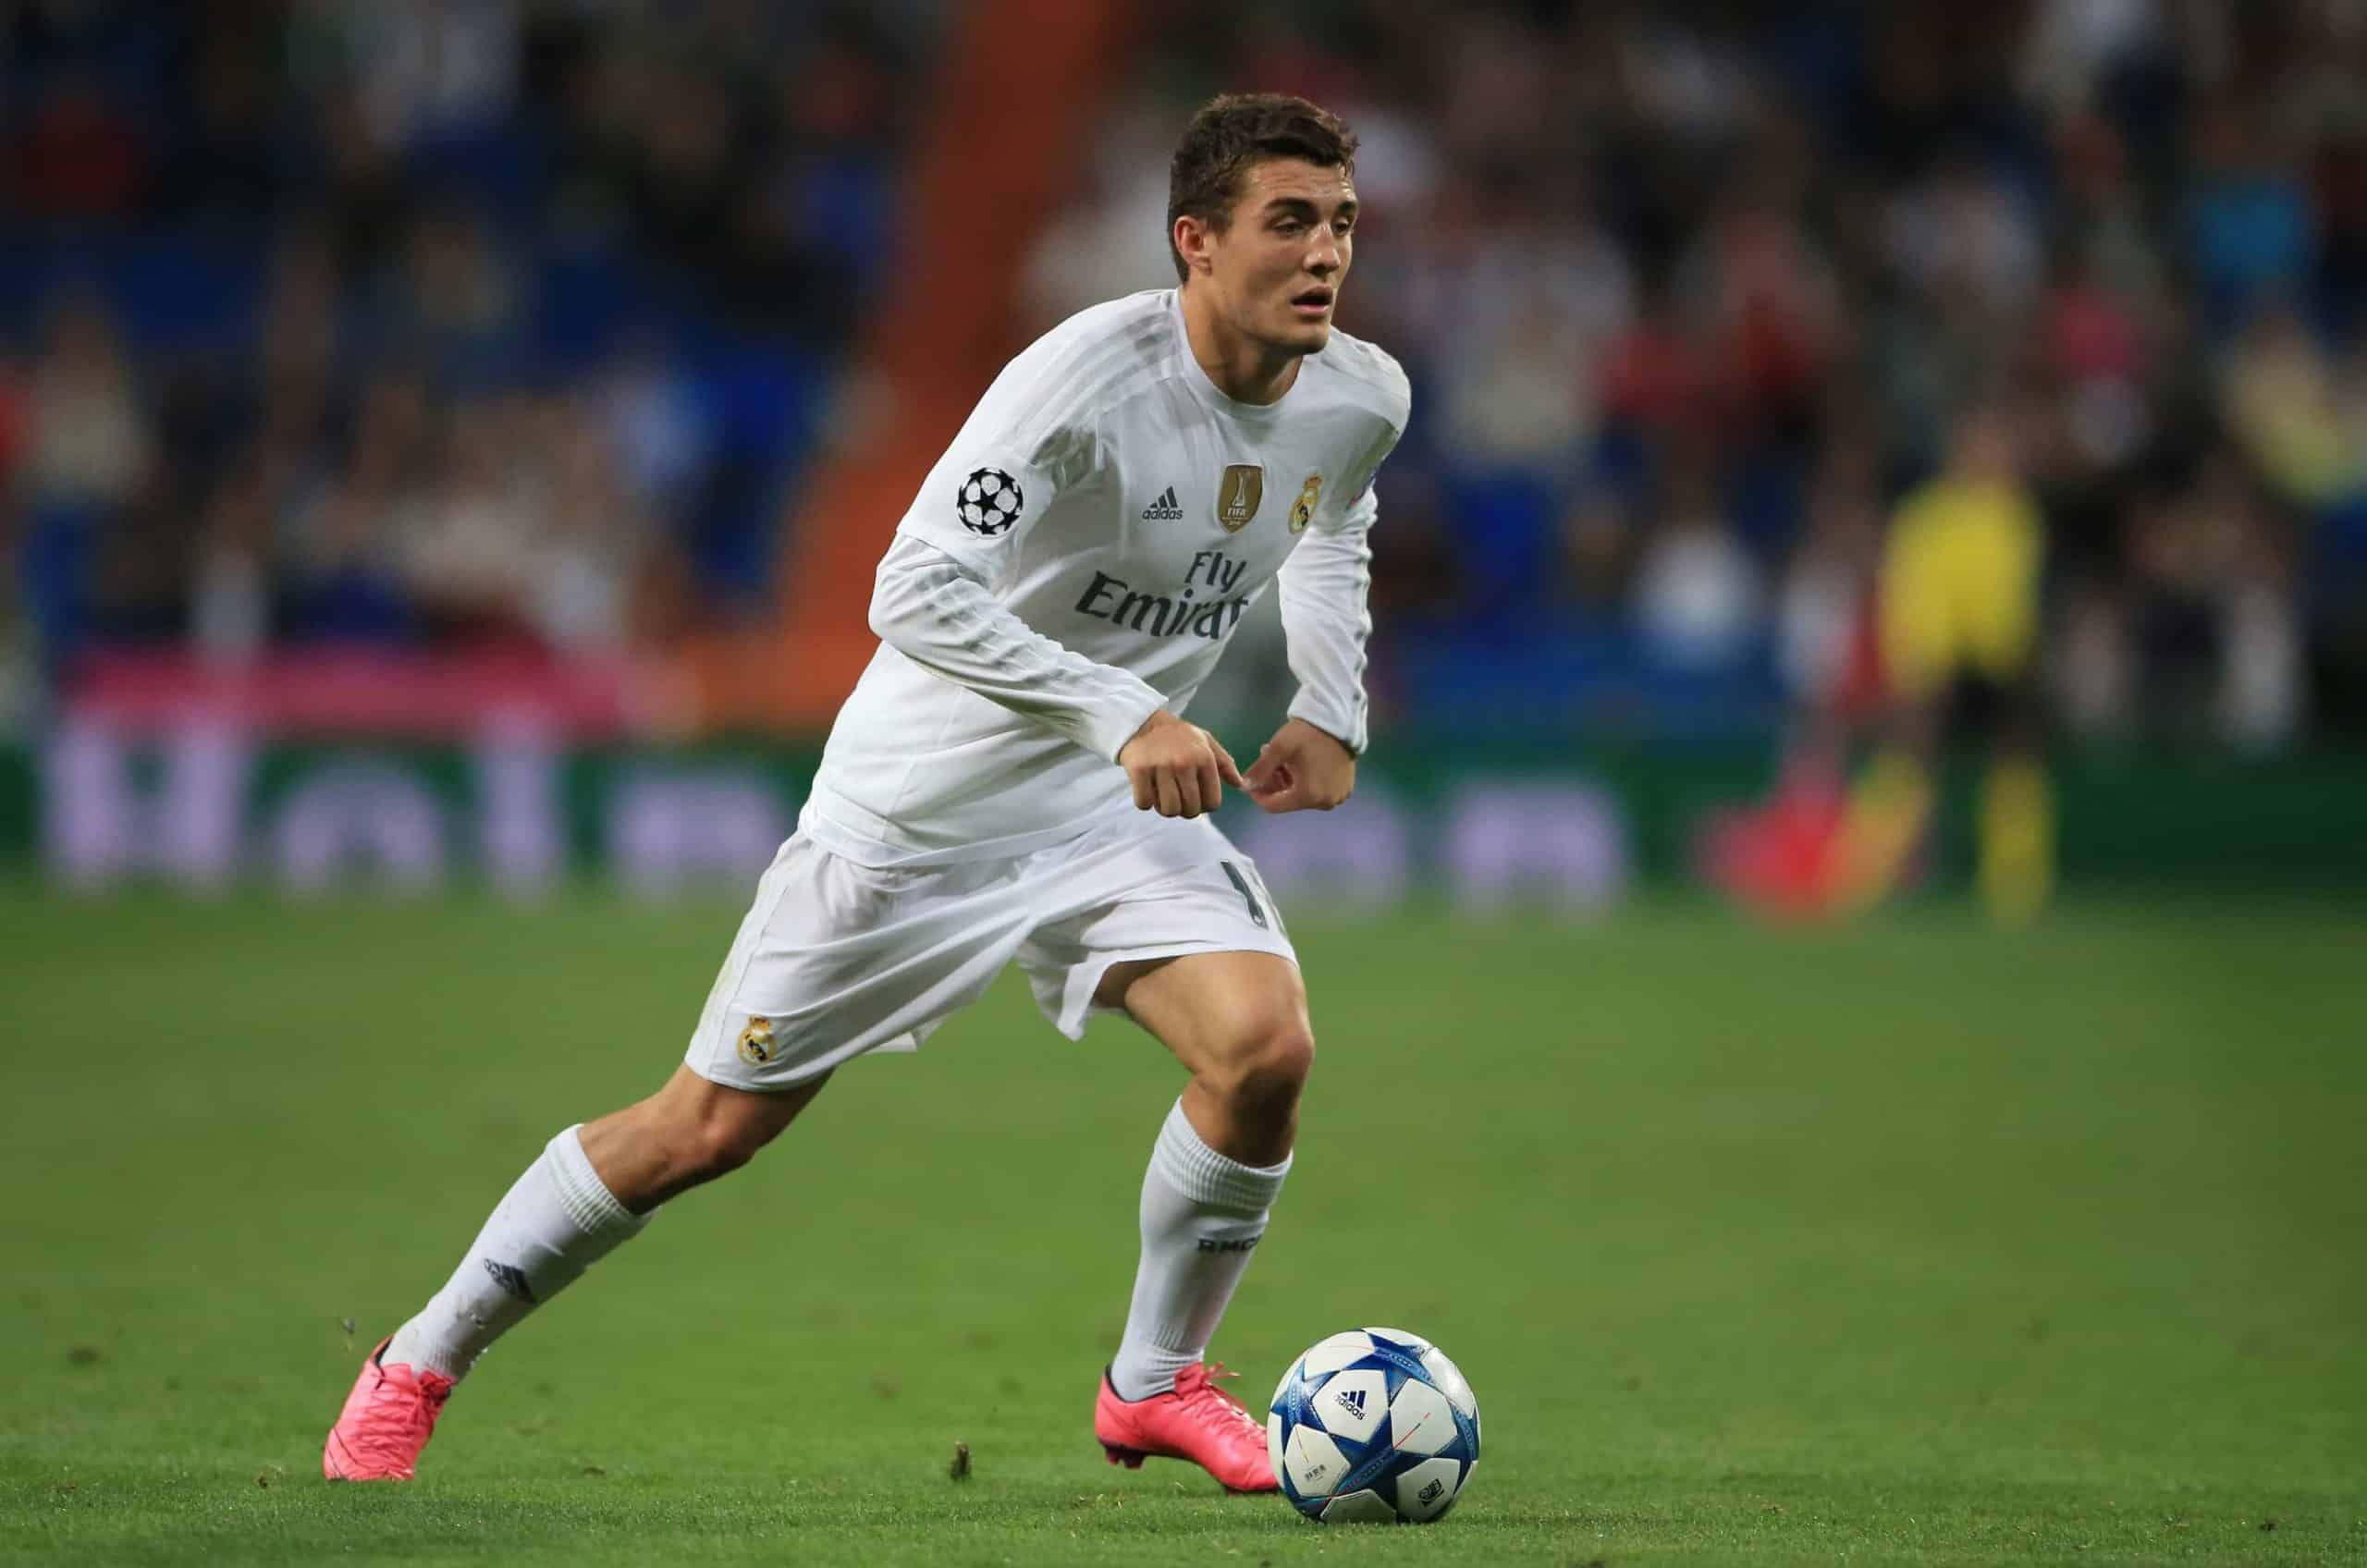 Real Madrid's Mateo Kovacic (Picture by: Nick Potts / EMPICS Sport)